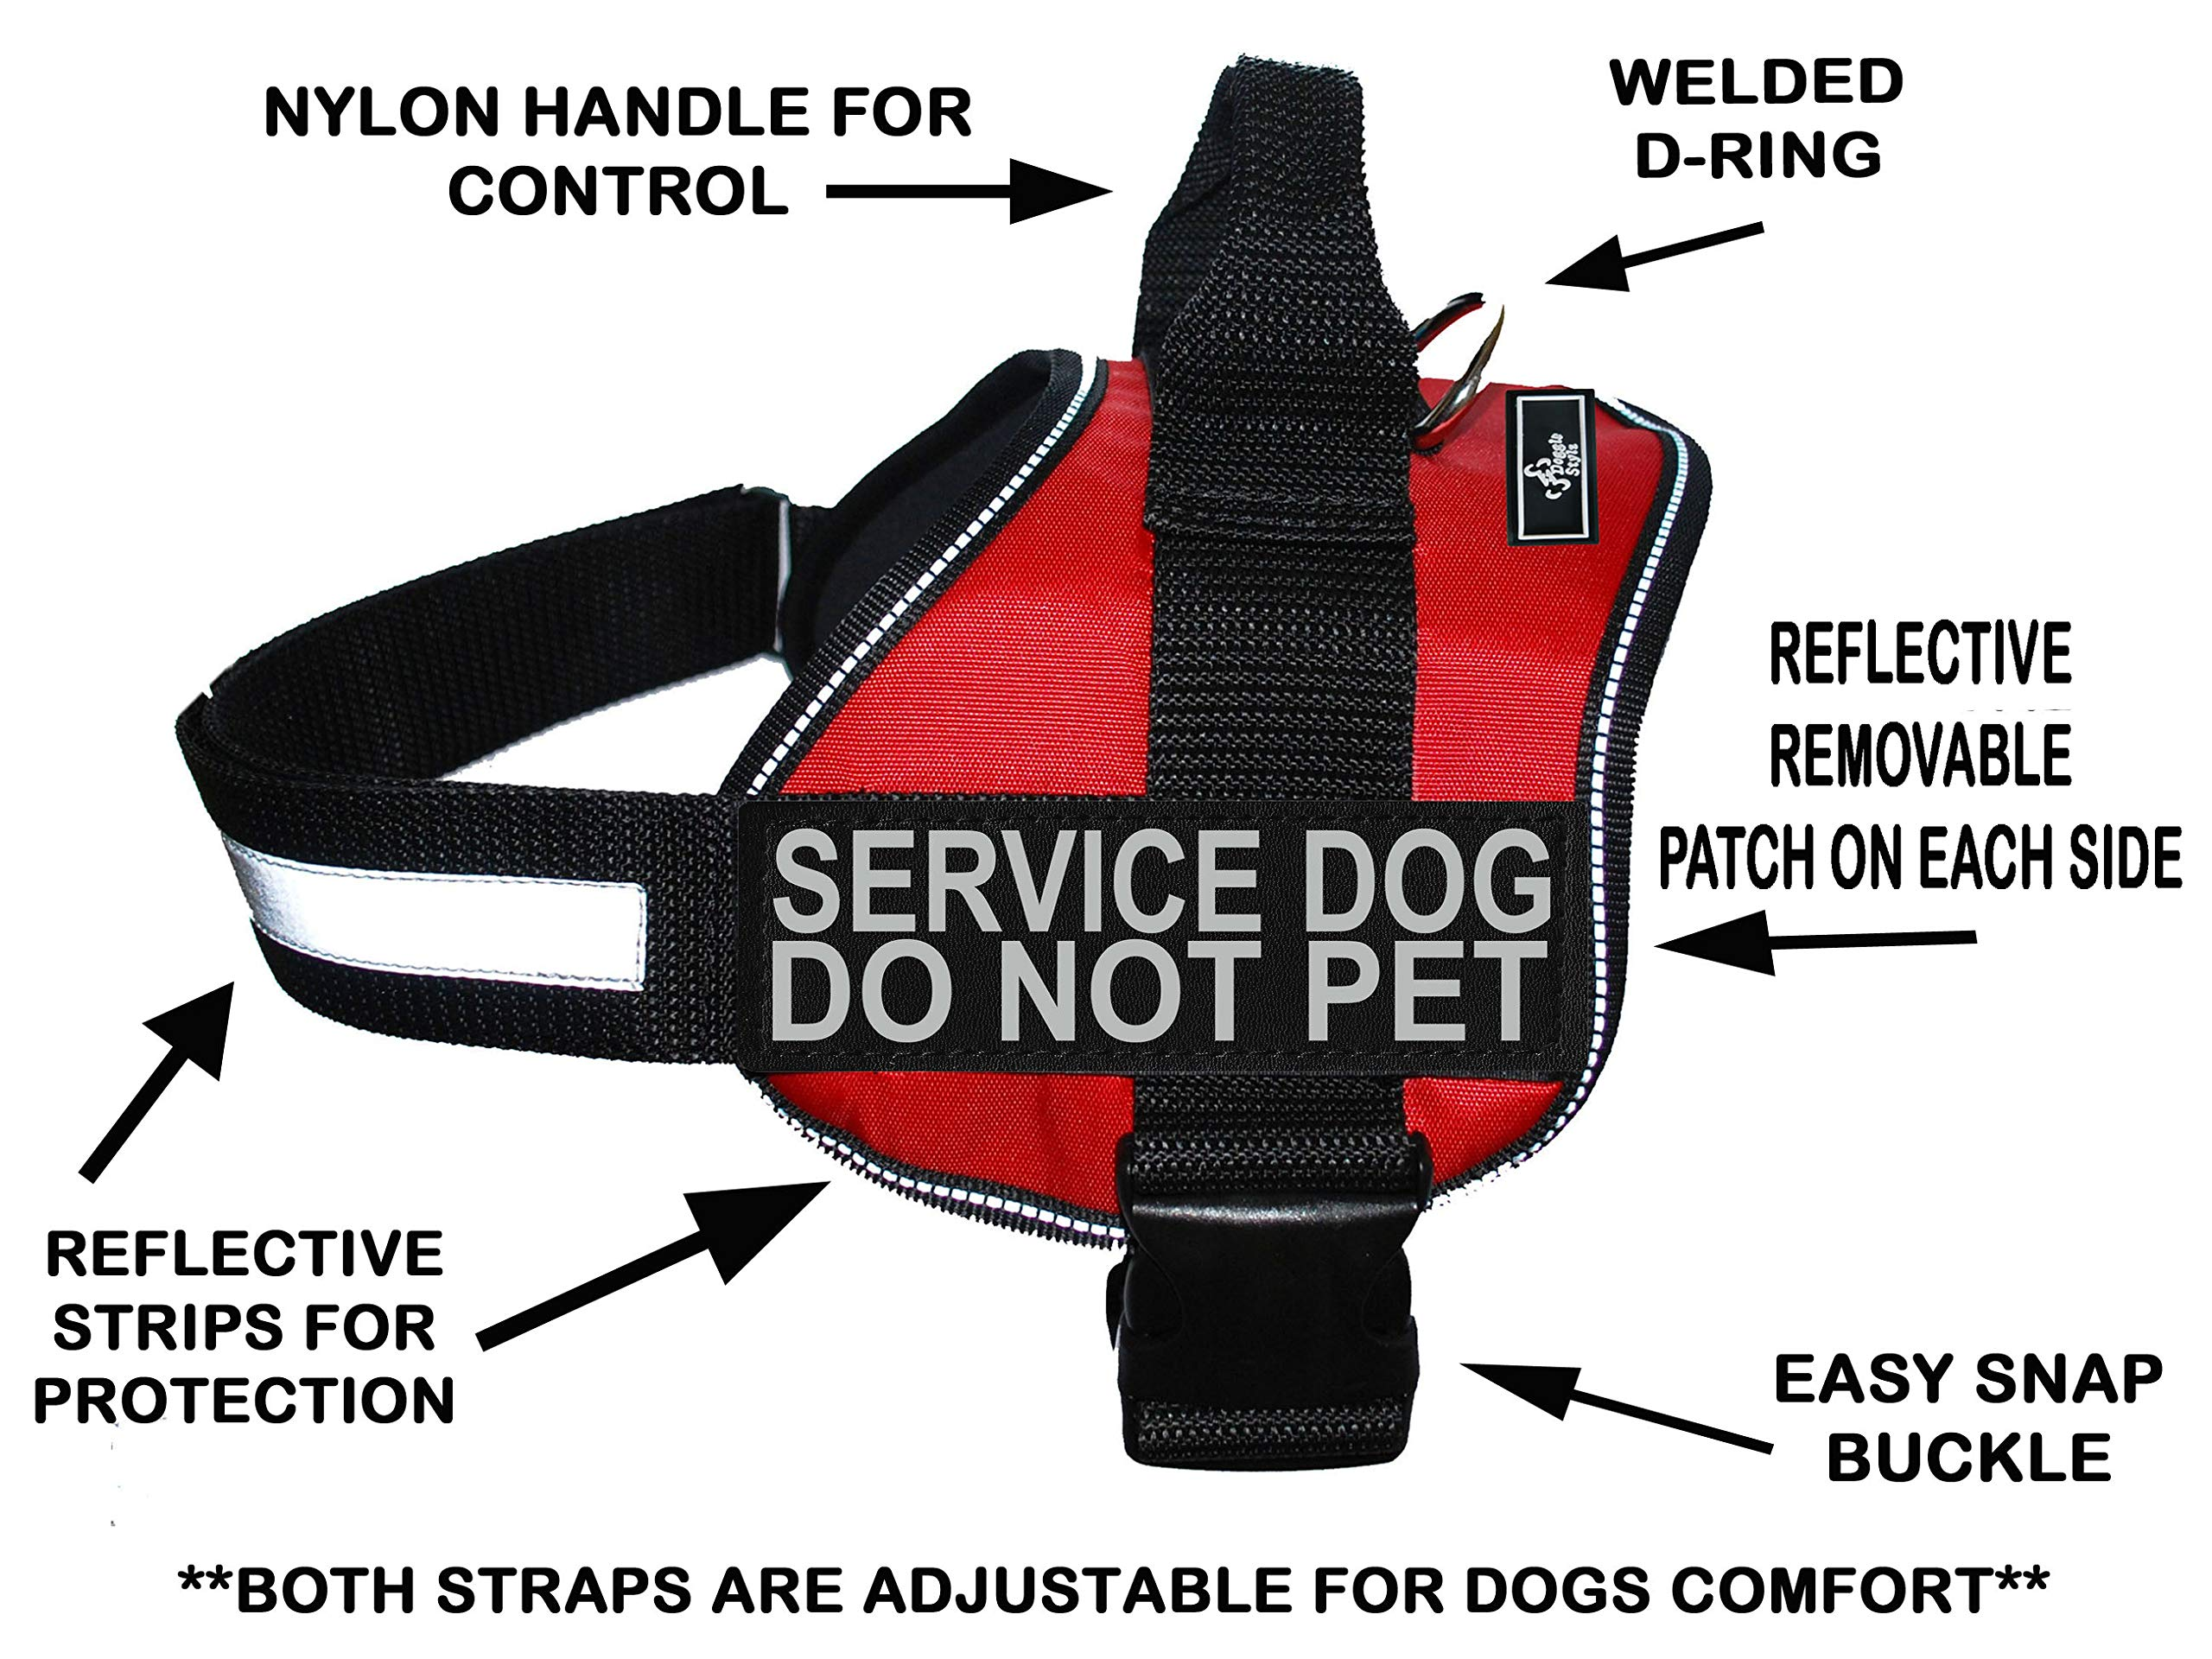 Doggie Stylz Service Dog Harness Vest Comes with 2 Reflective Service Dog DO NOT PET Patches. Please Measure Dog Before Ordering (Girth 19-25'', Red)